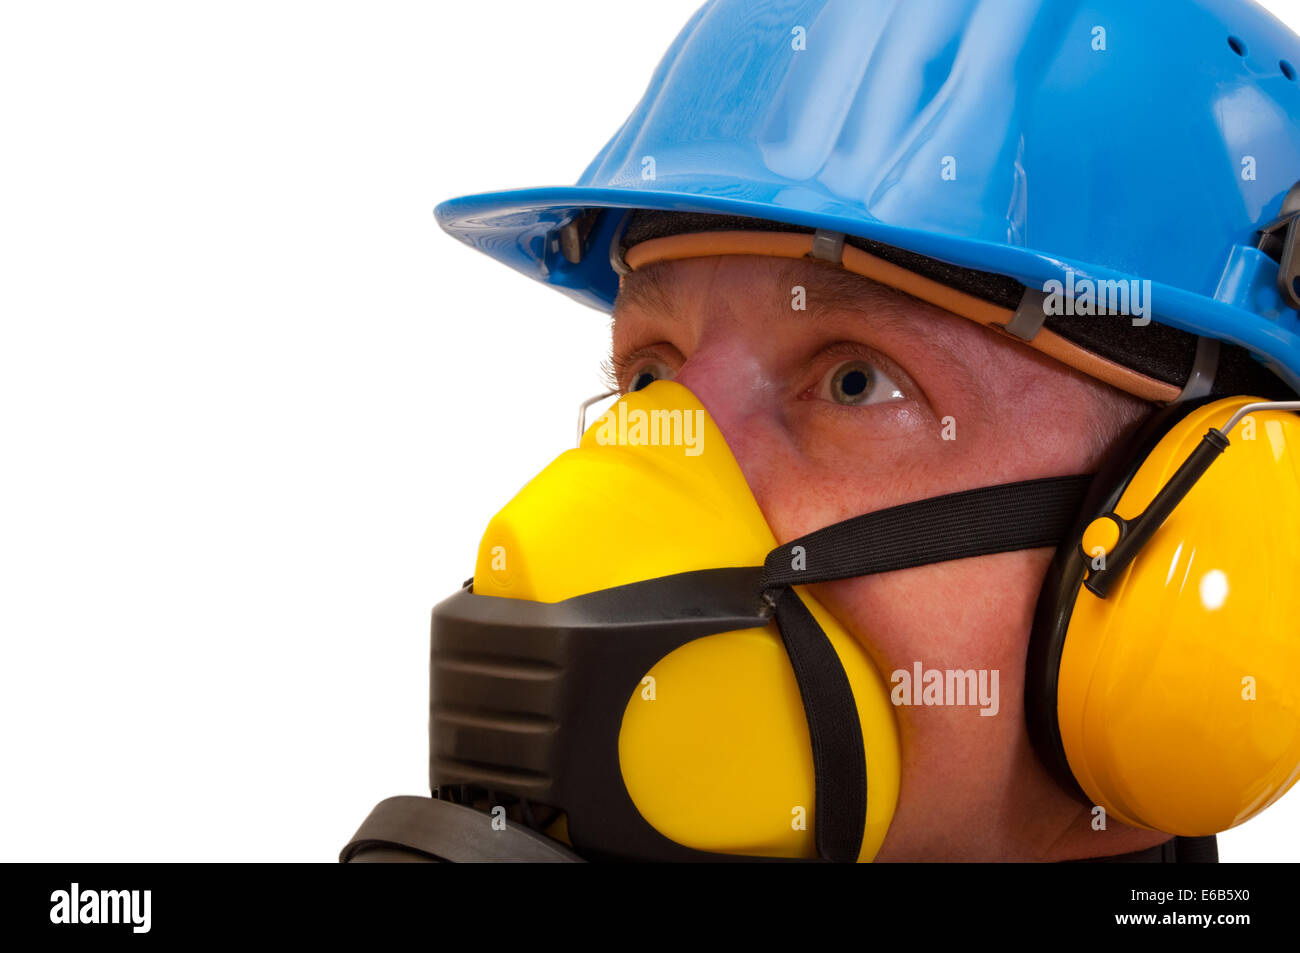 Labor Safety Construction Worker Labor Protection Occupational Safety Stock